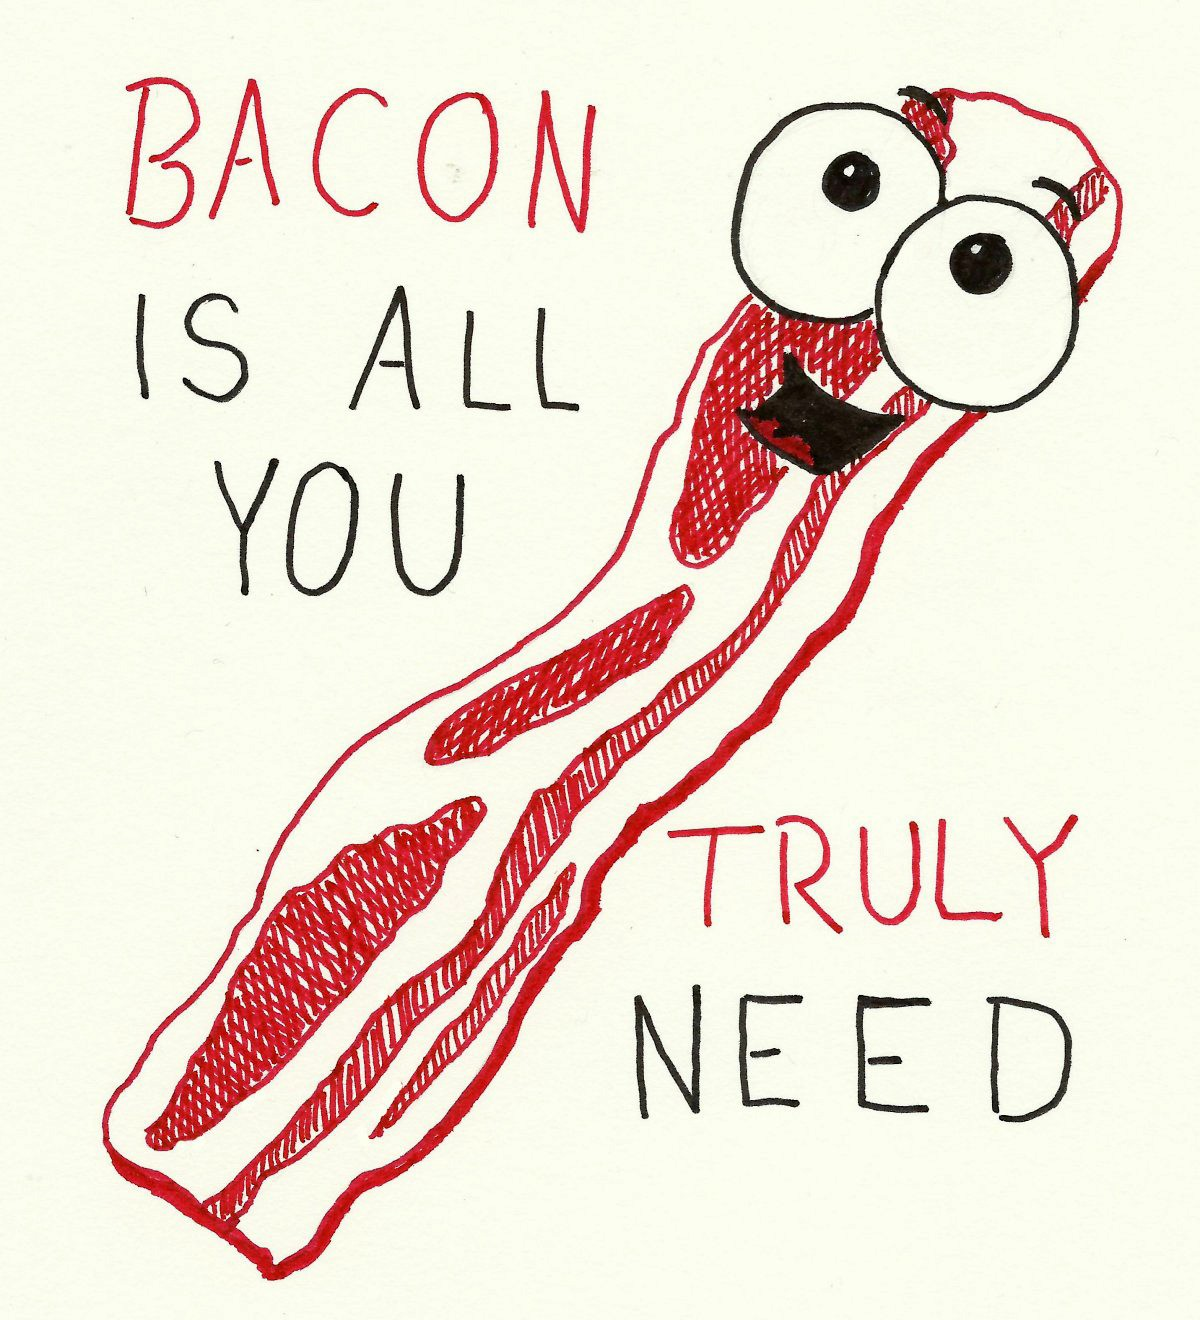 00 Bacon is all that You Truly Need. 29.11.12